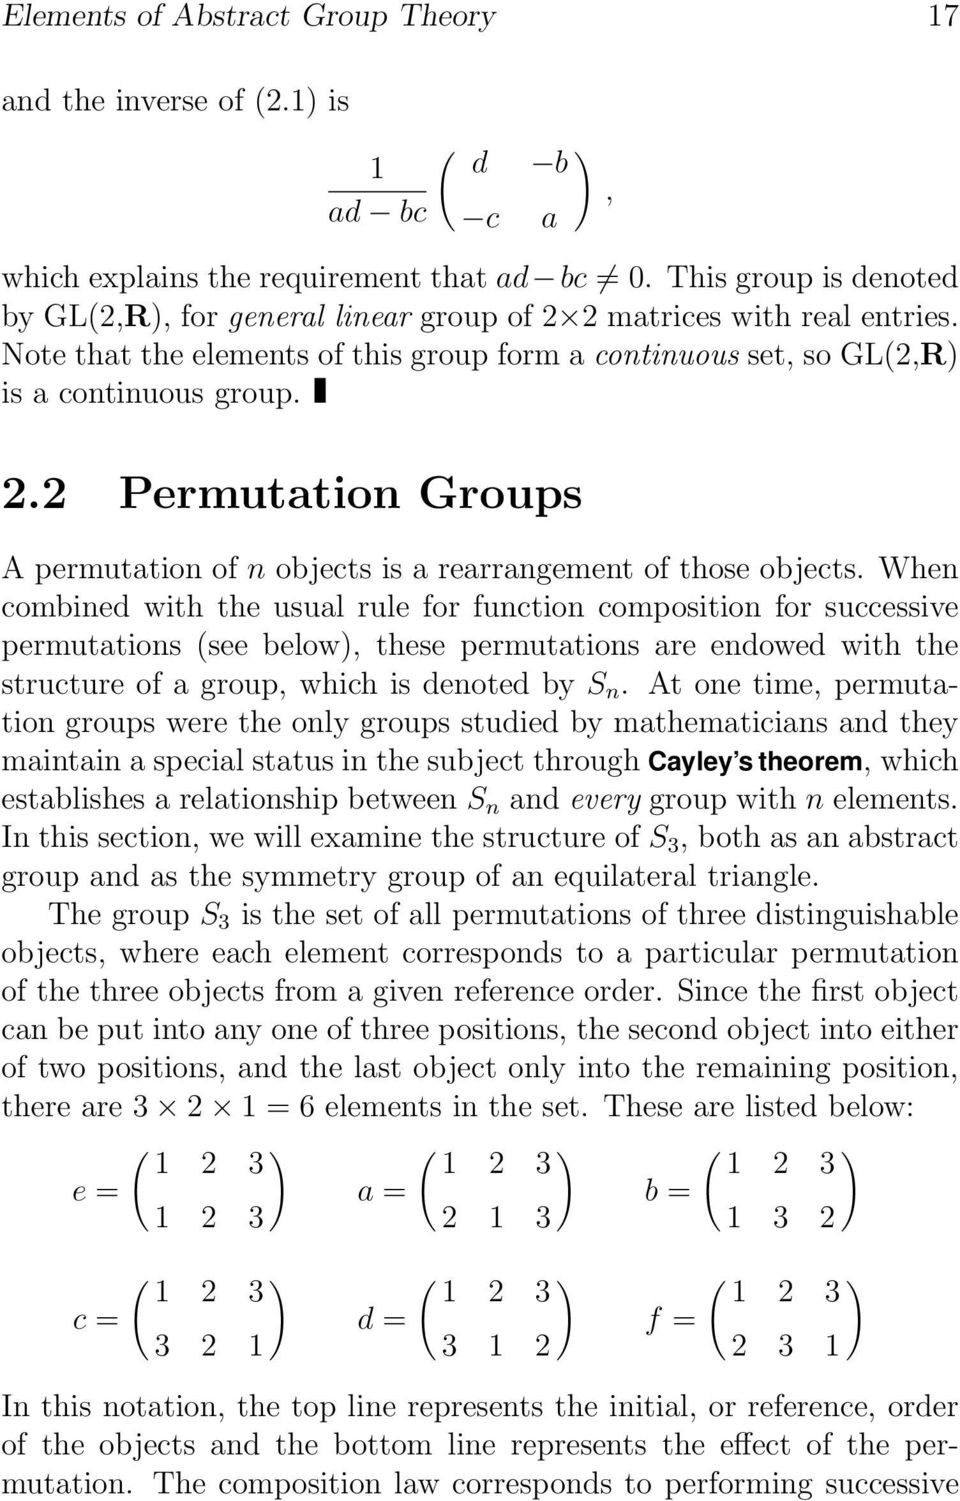 When combined with the usual rule for function composition for successive permutations (see below), these permutations are endowed with the structure of a group, which is denoted by S n.